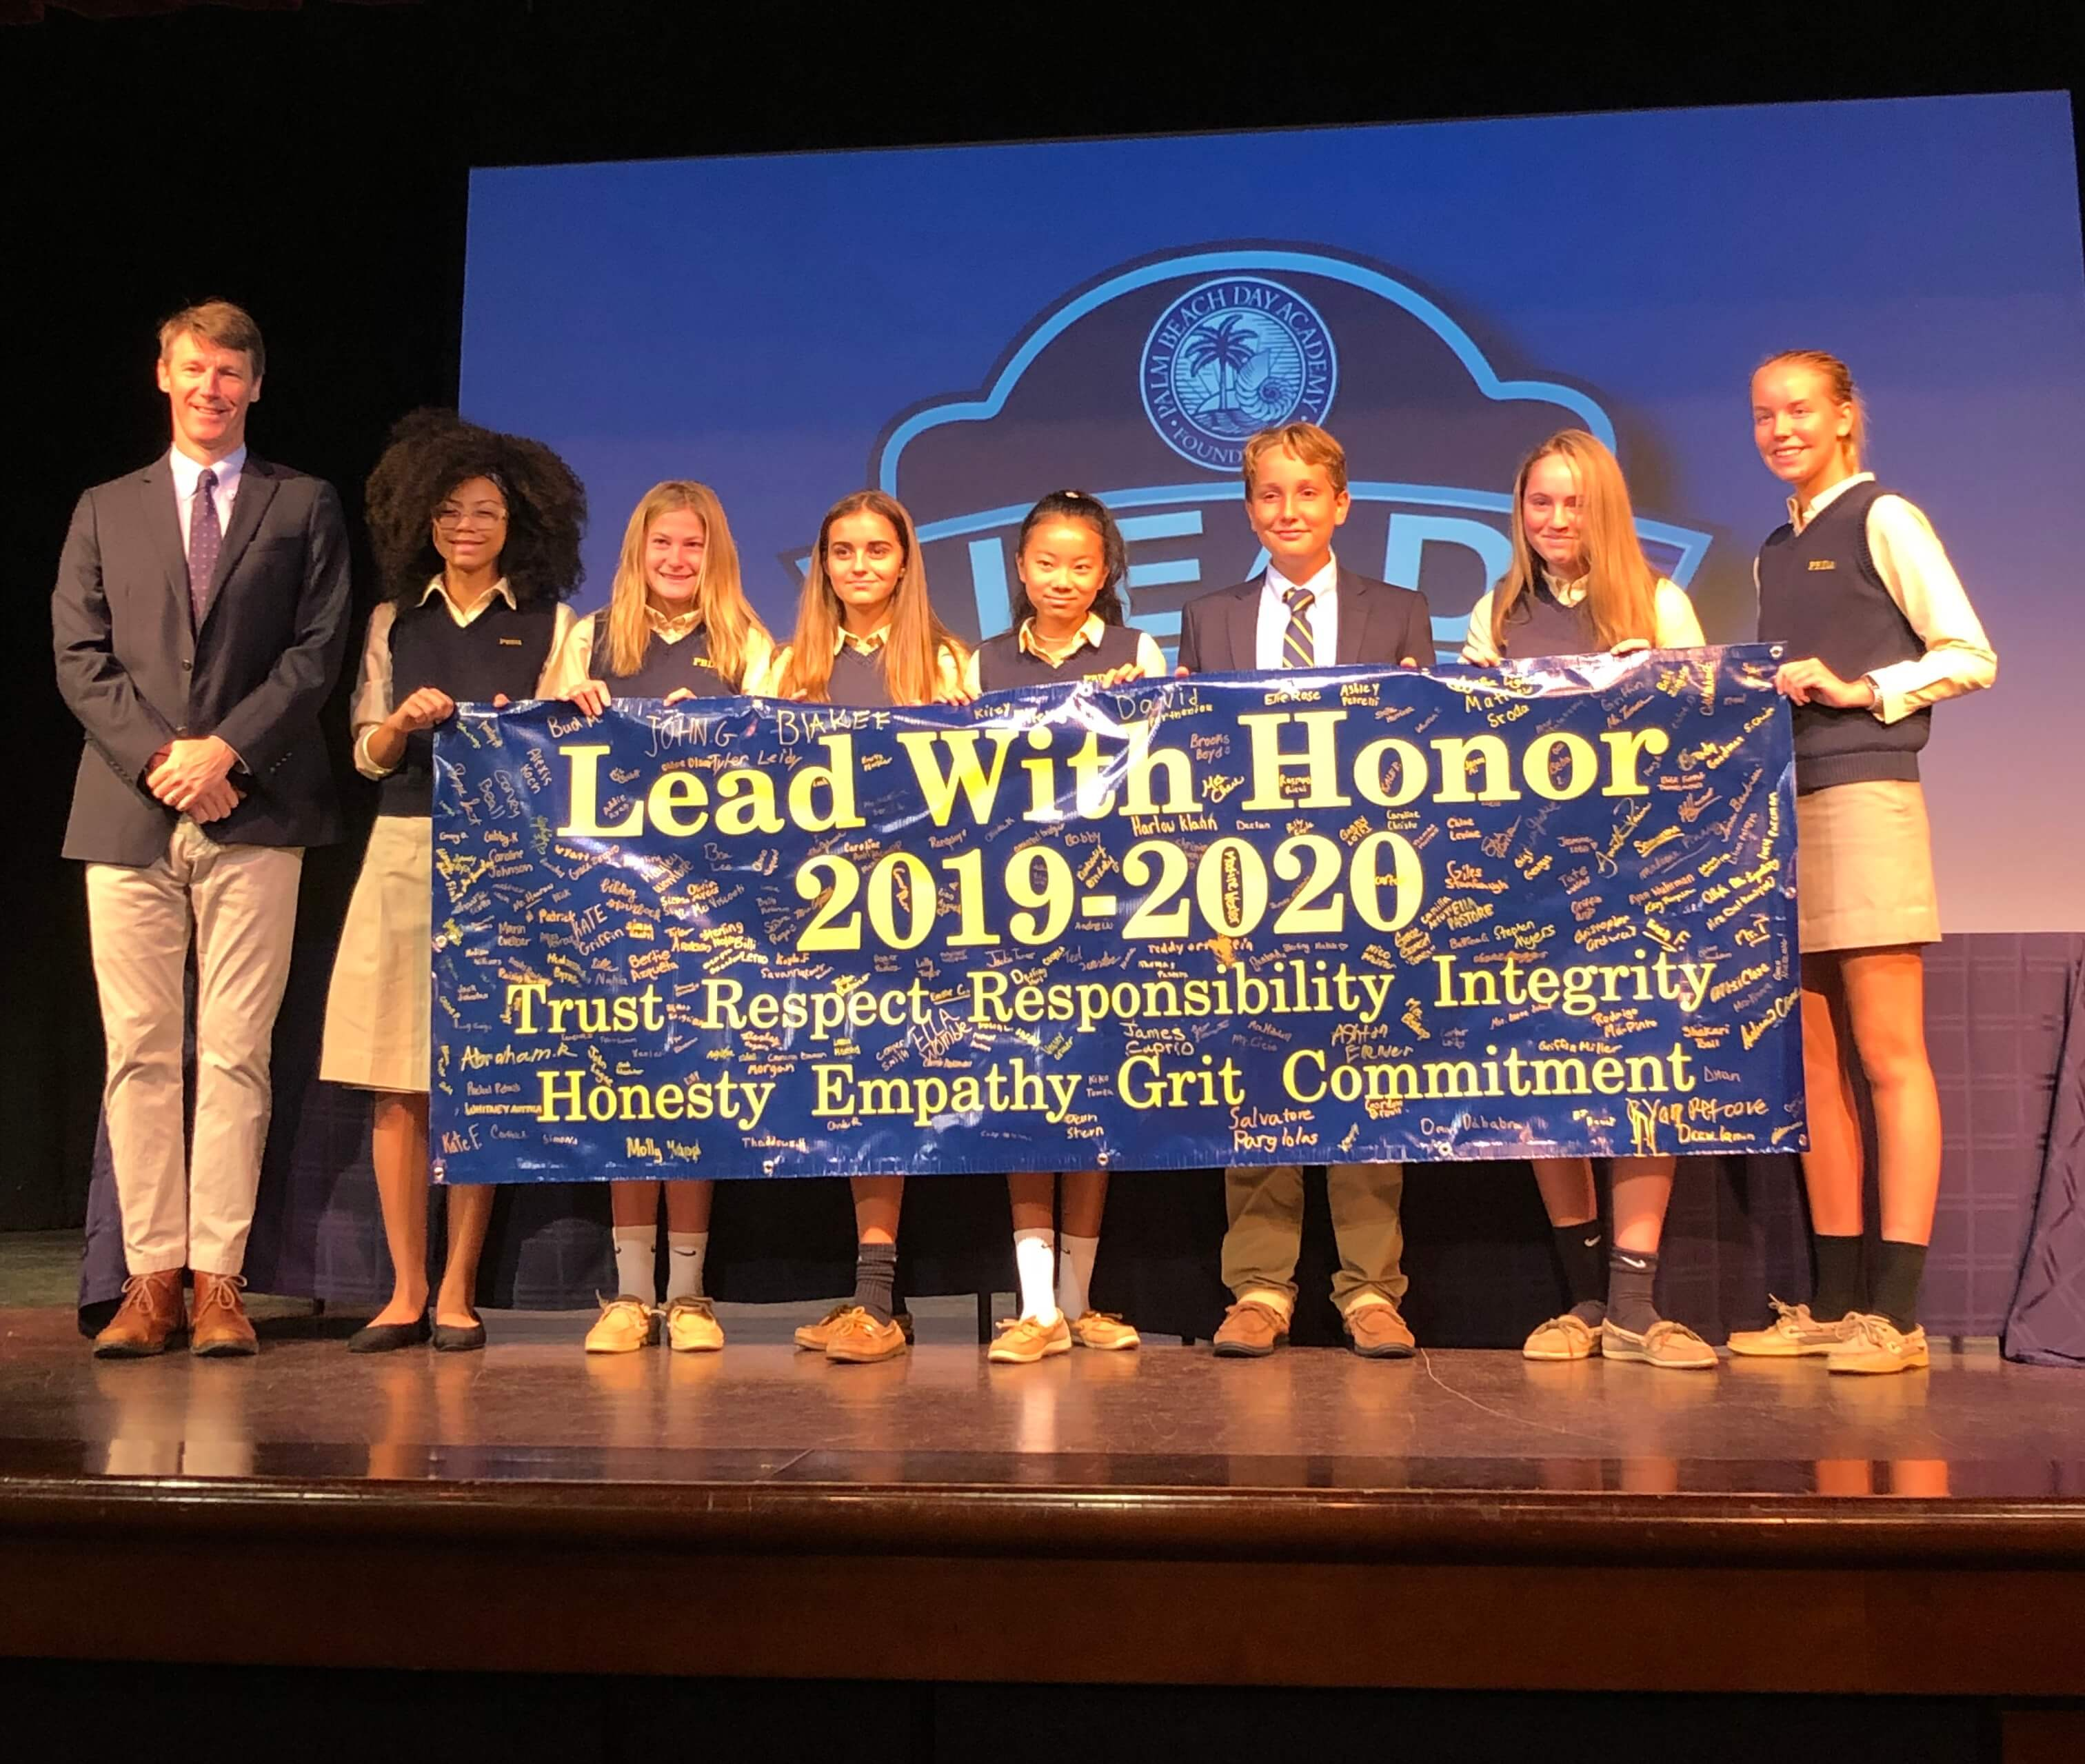 PBDA Lead With Honor September 2019